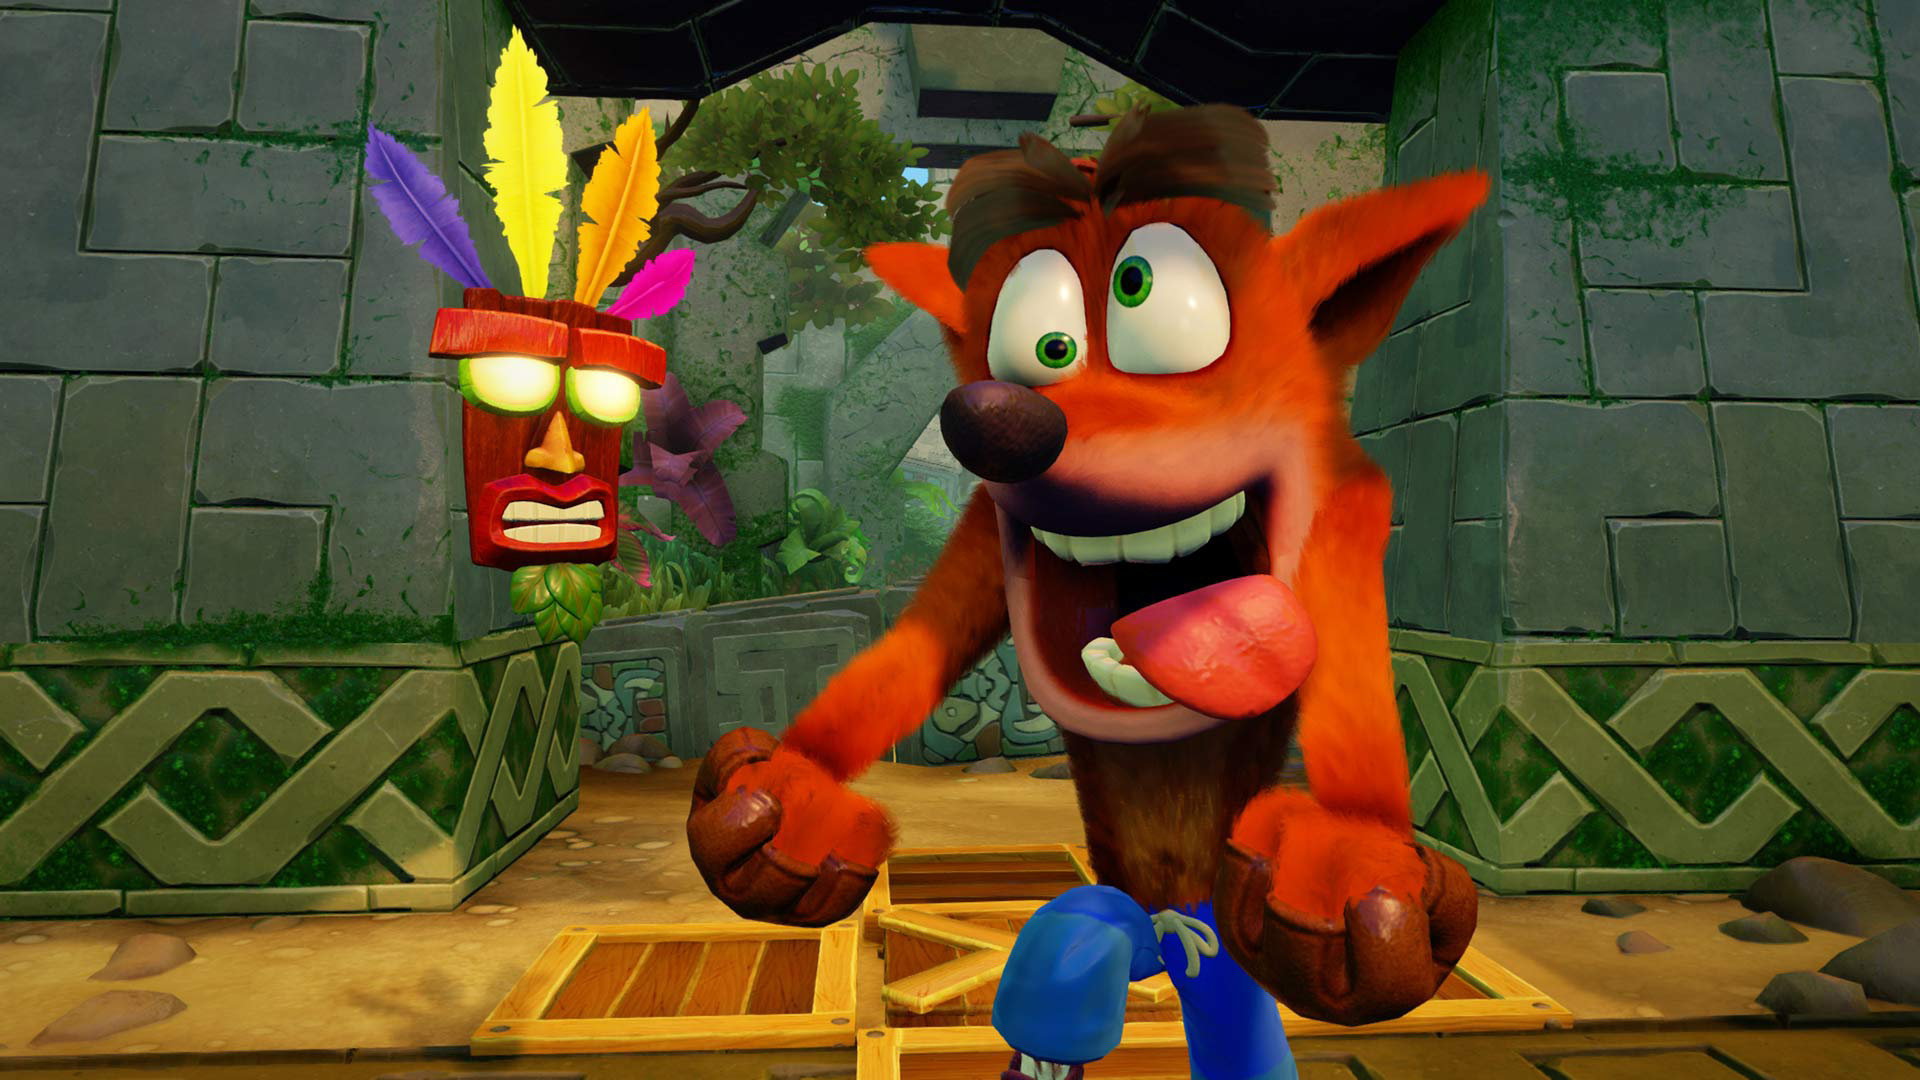 Crash Bandicoot N. Sane Trilogy (PS4) - better than you remember it